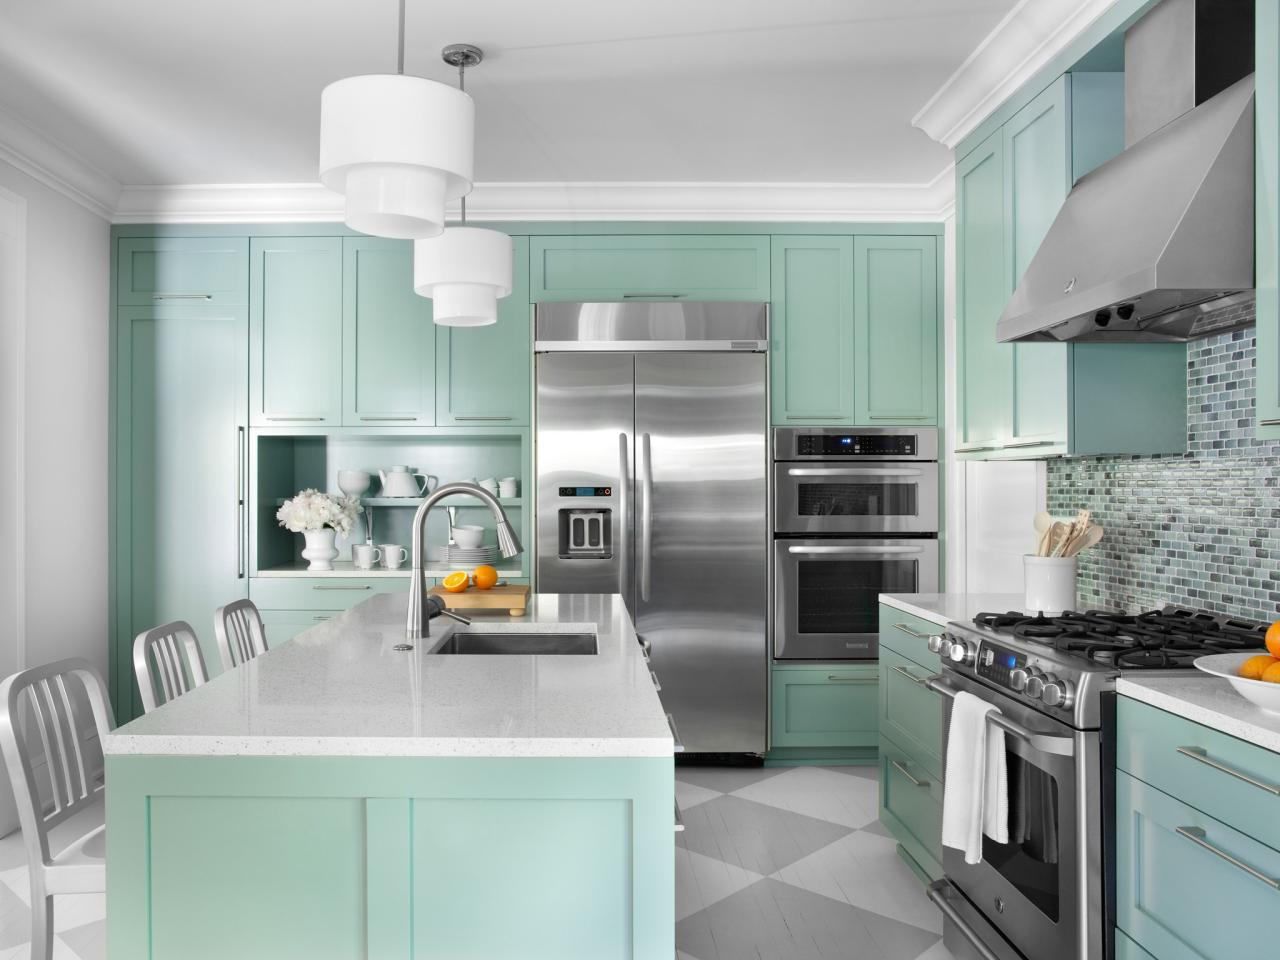 Color Ideas for Painting Kitchen Cabinets + HGTV Pictures | HGTV on grey interior design paint ideas, grey bathroom paint ideas, grey sofa paint ideas, grey wood paint ideas,